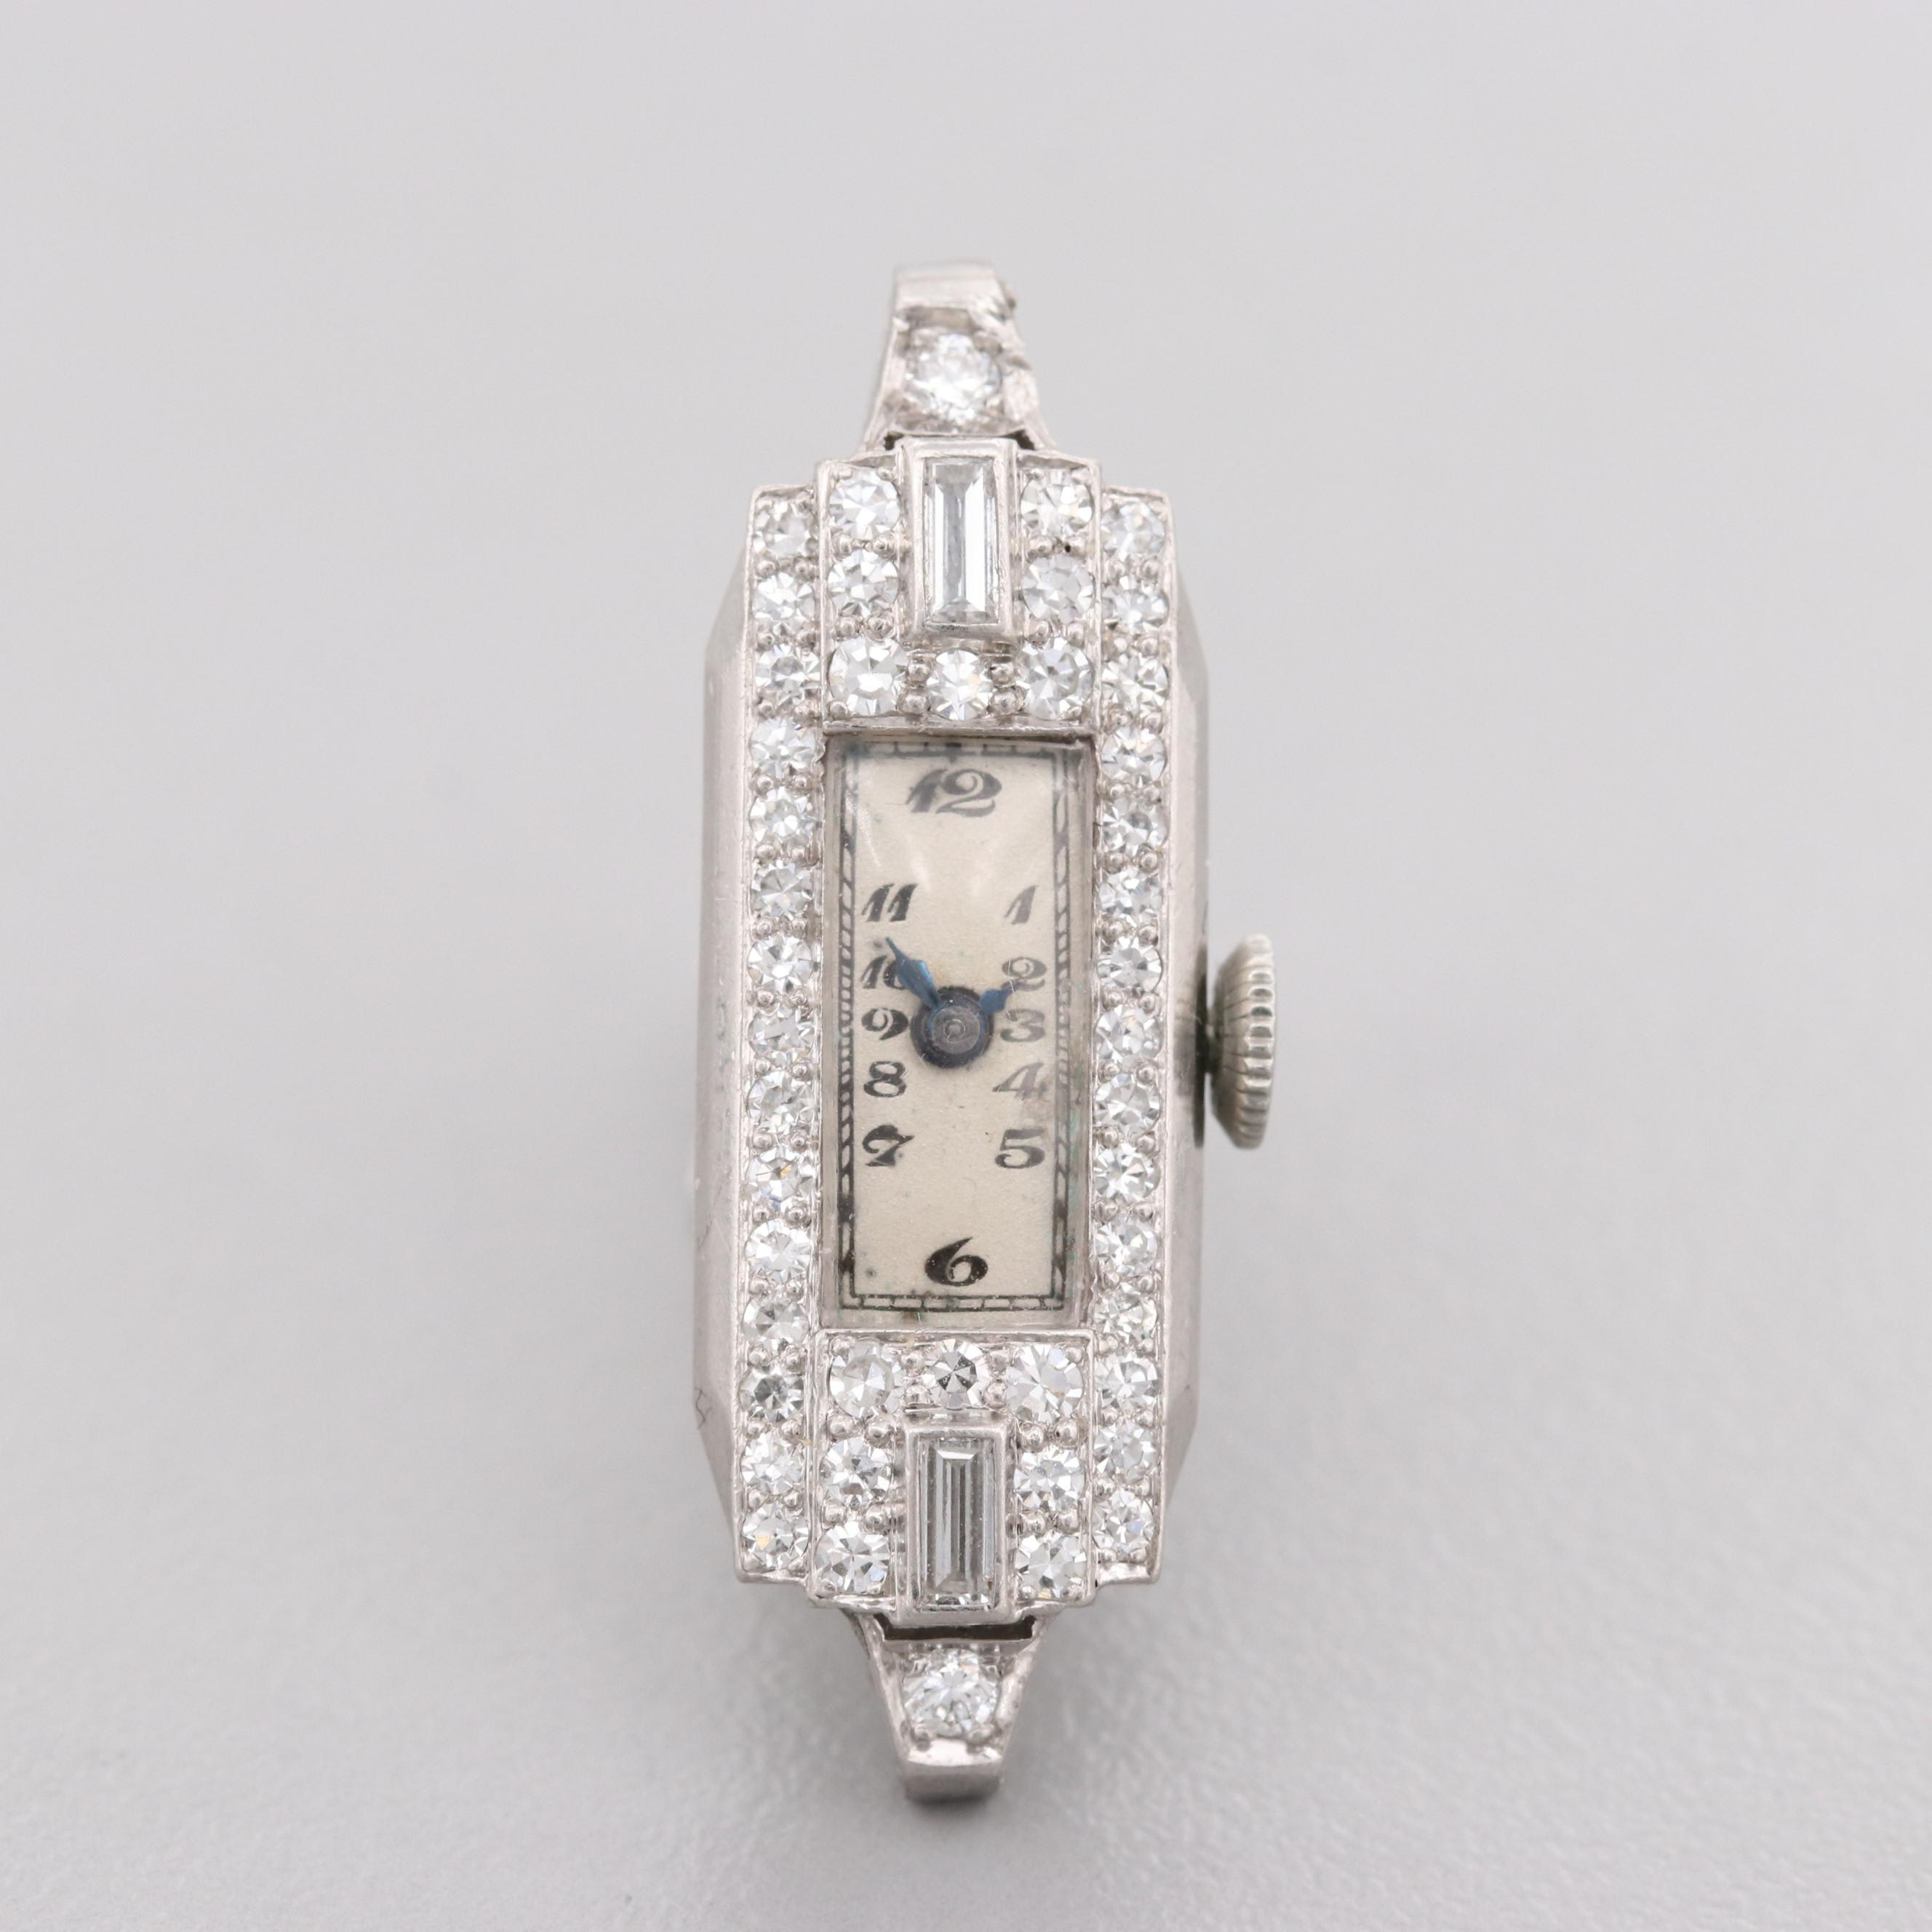 Concord Platinum Diamond Wristwatch